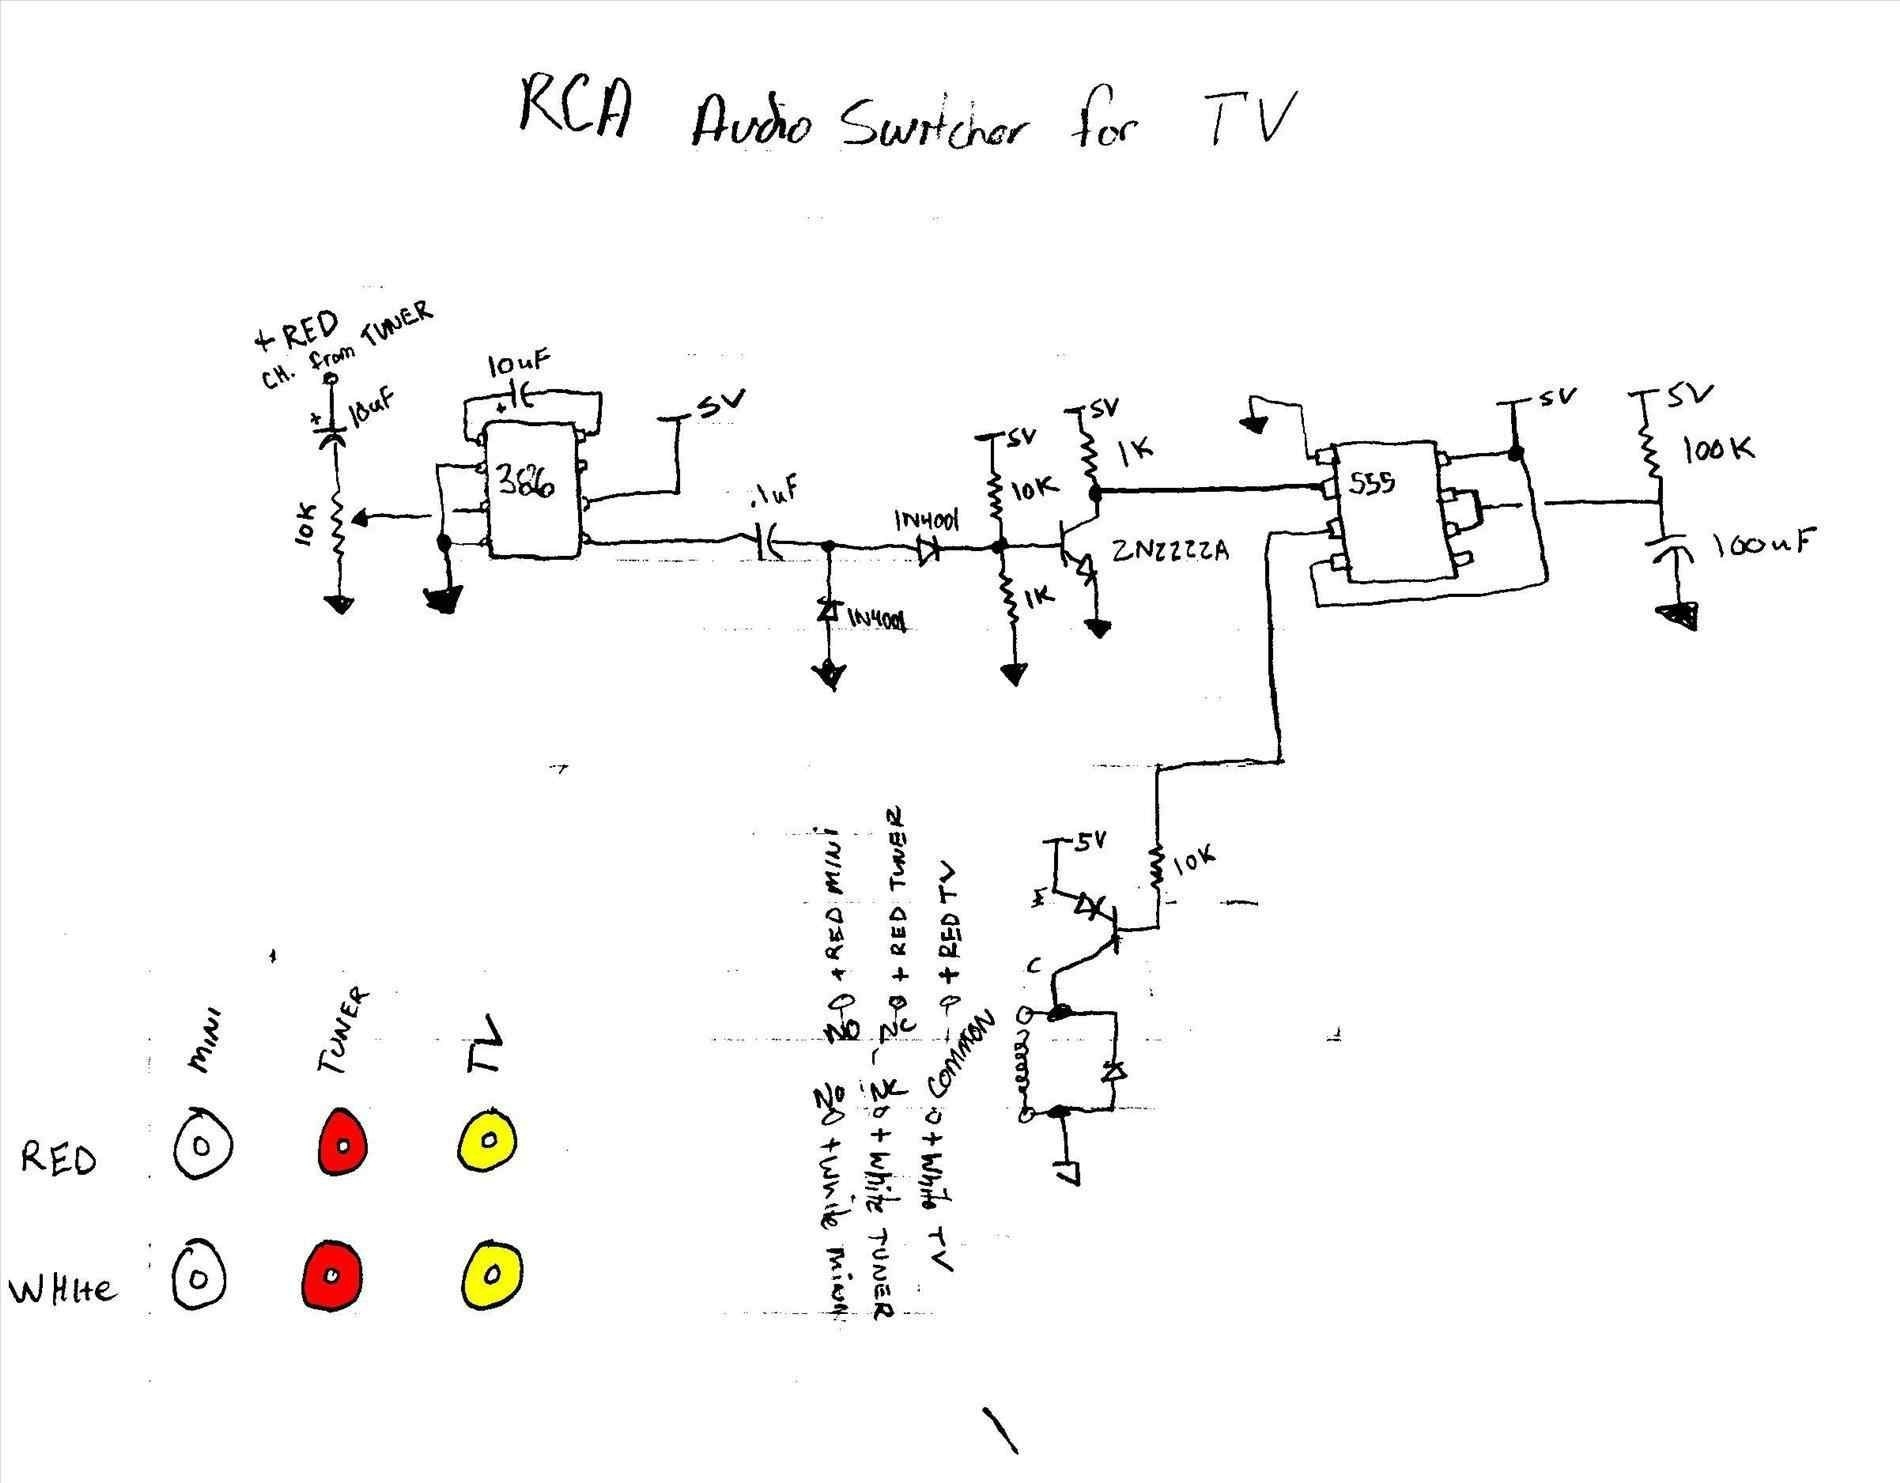 usb to rca cable wiring diagram wiring diagram usb to rca cable wiring diagram mini hdmi cable wiring diagram best micro hdmi cable